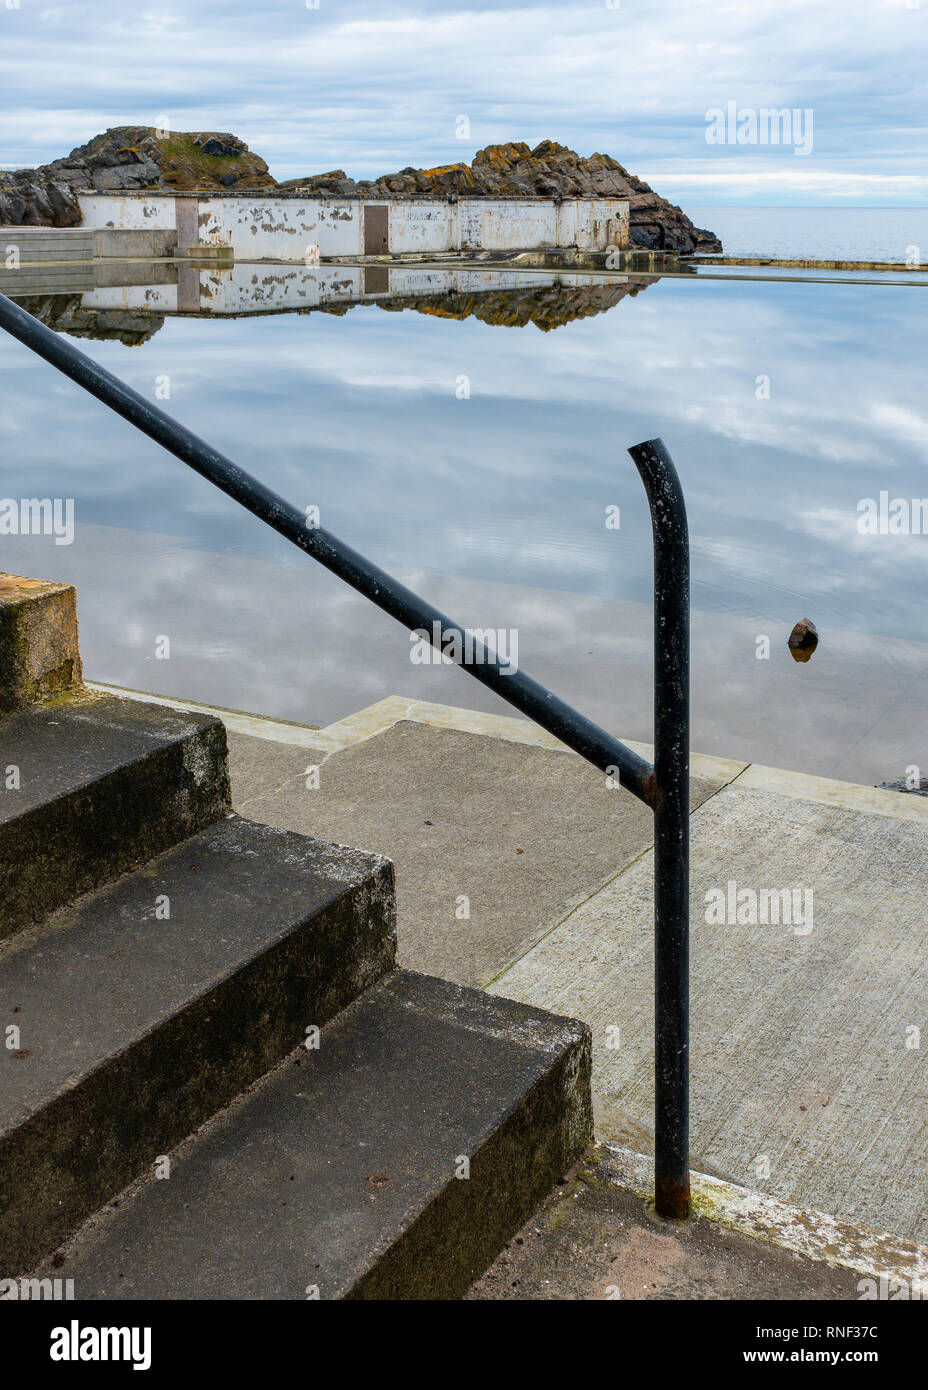 A View Of Concrete Steps And A Broken Metal Railing Outside Tarlair Swimming Pool Now Abandoned And Derelict Near Macduff Aberdeenshire Scotland Stock Photo Alamy